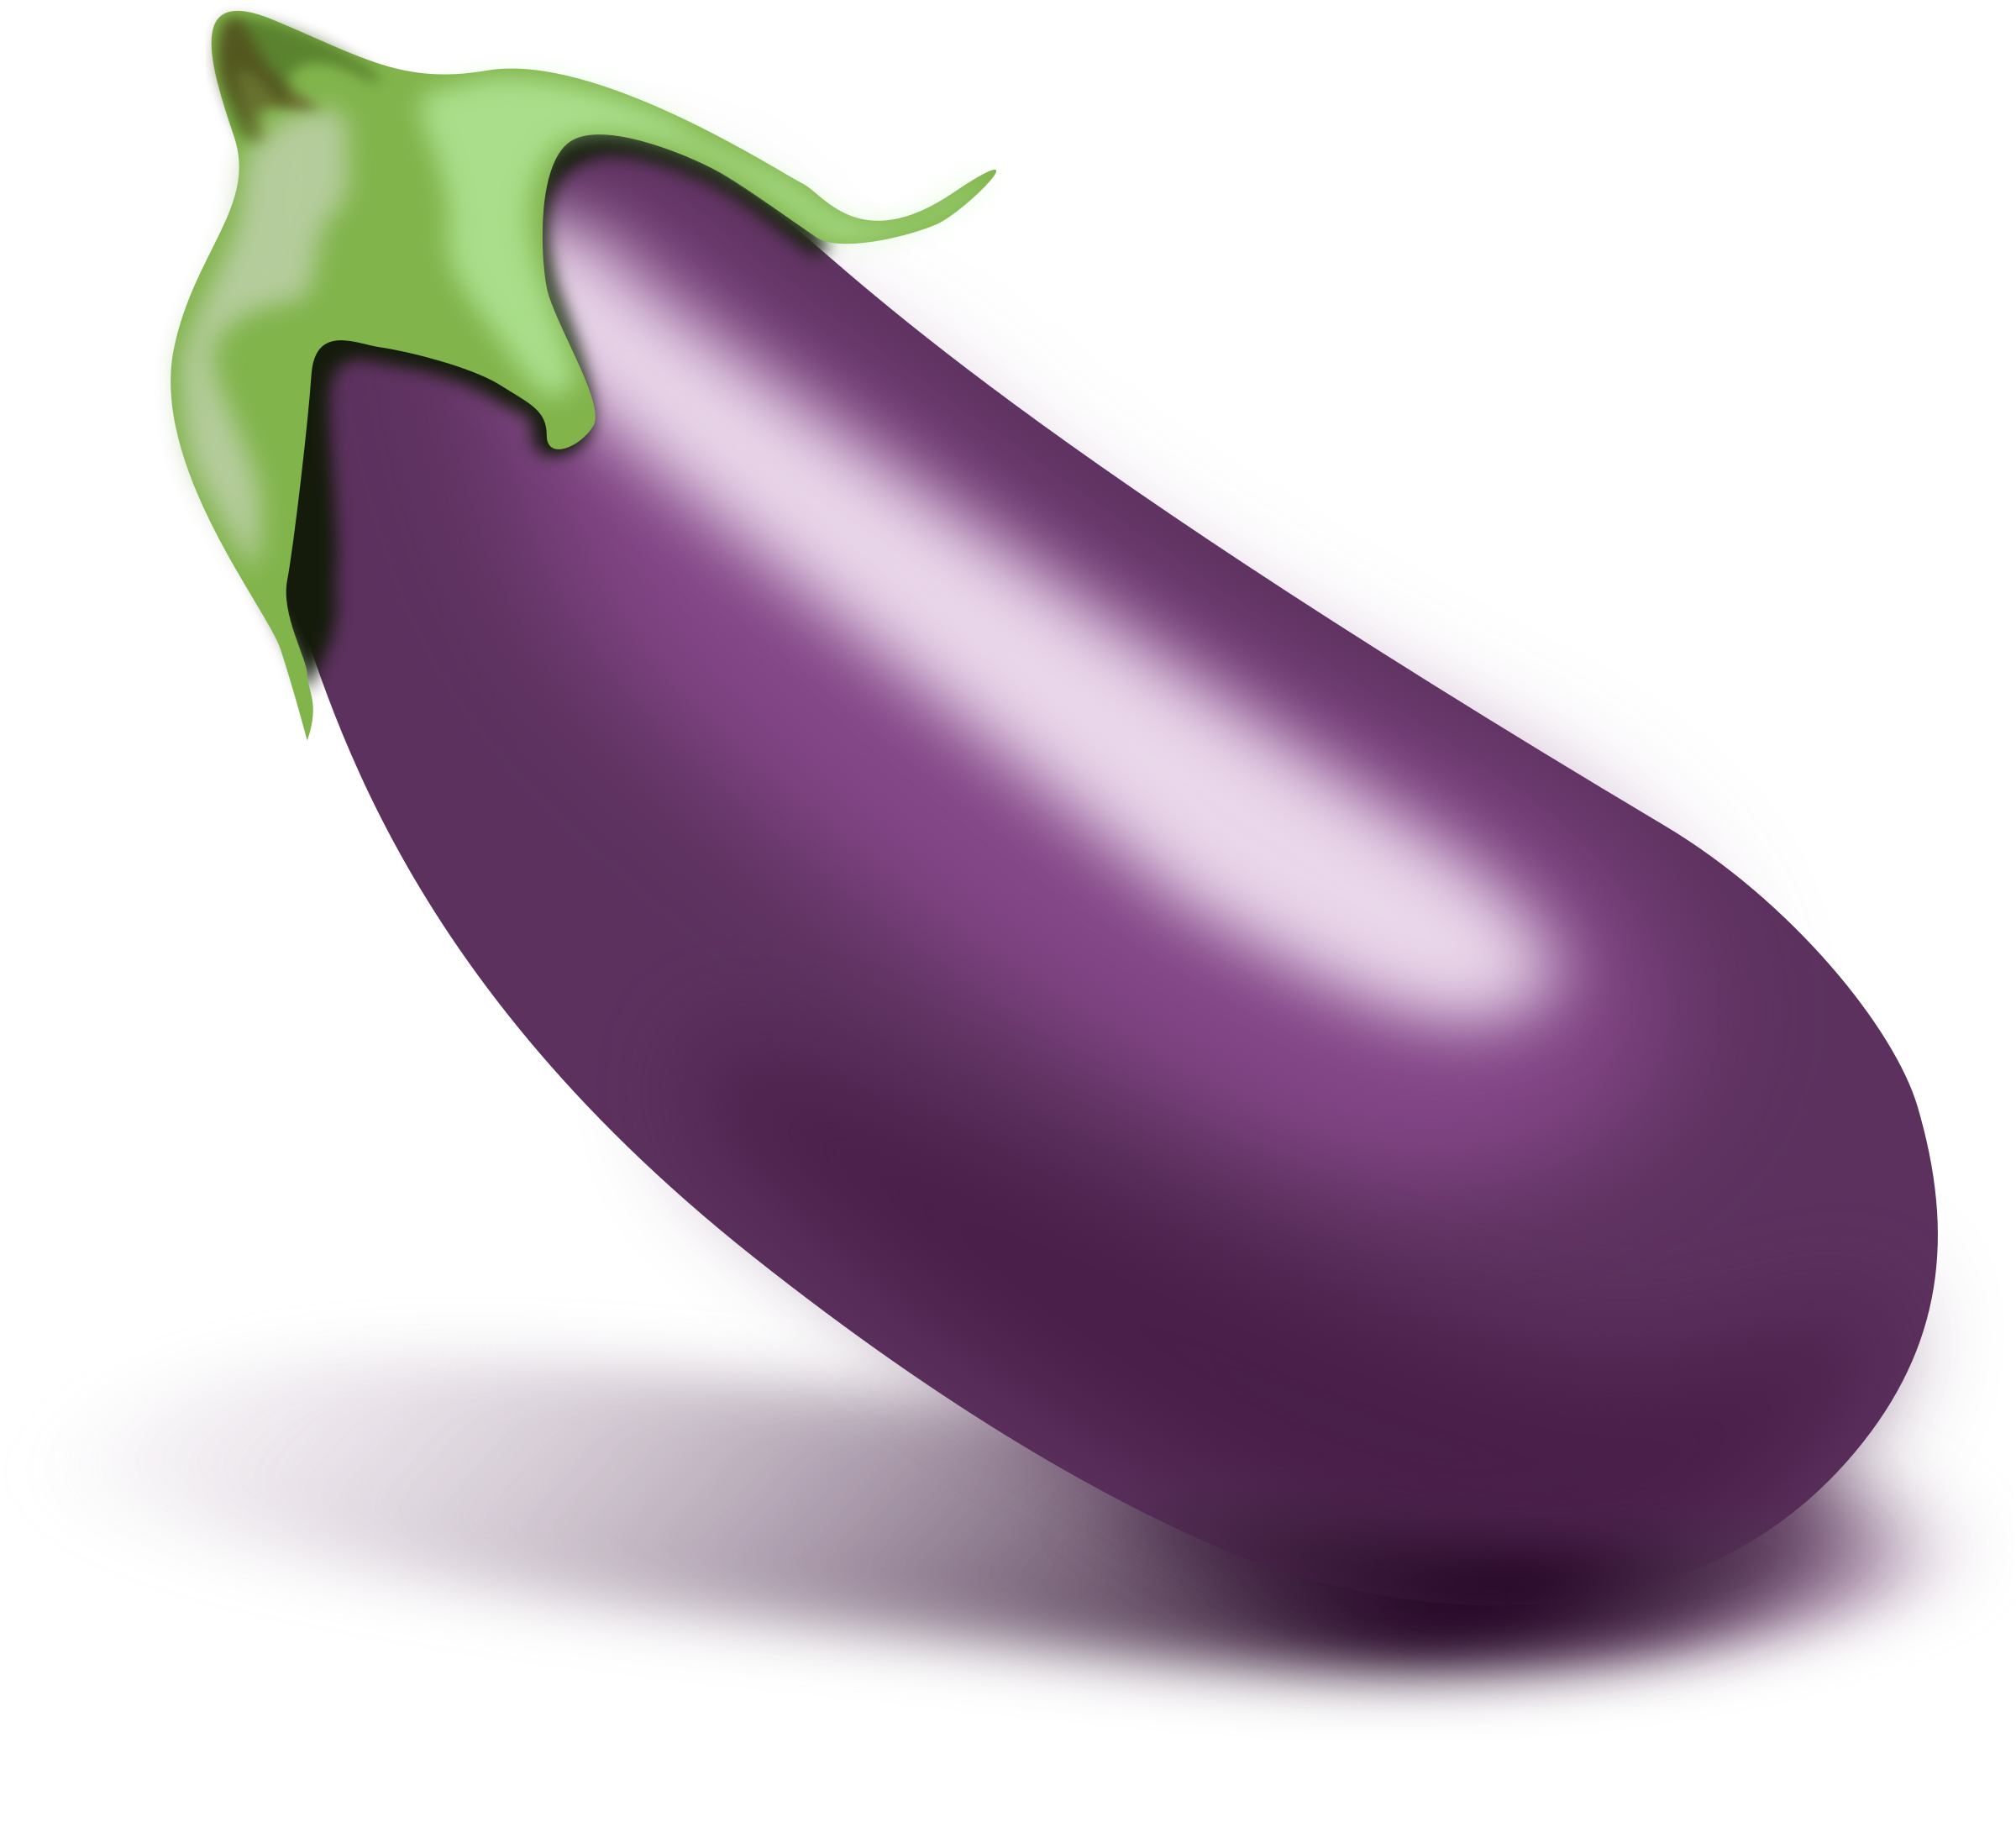 Clip art Openclipart Aubergines Image Free content.